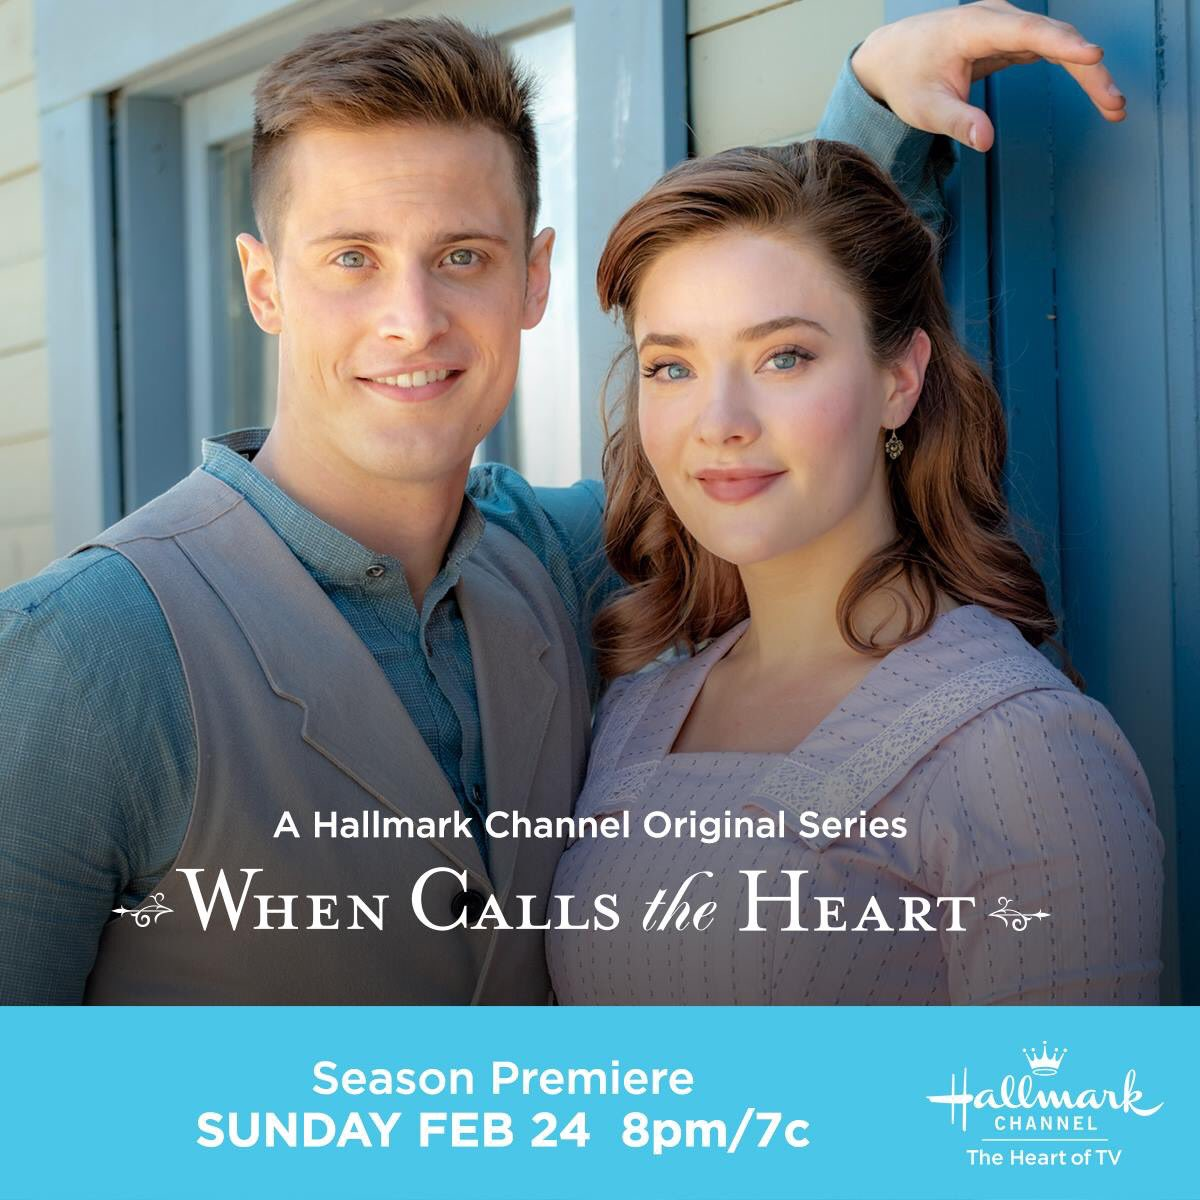 RT @MPCA_BKTV: What are you hoping for Jesse & Clara in S6,  #Hearties? @hallmarkmovie @hallmarkchannel https://t.co/BJ3b9S4BSR